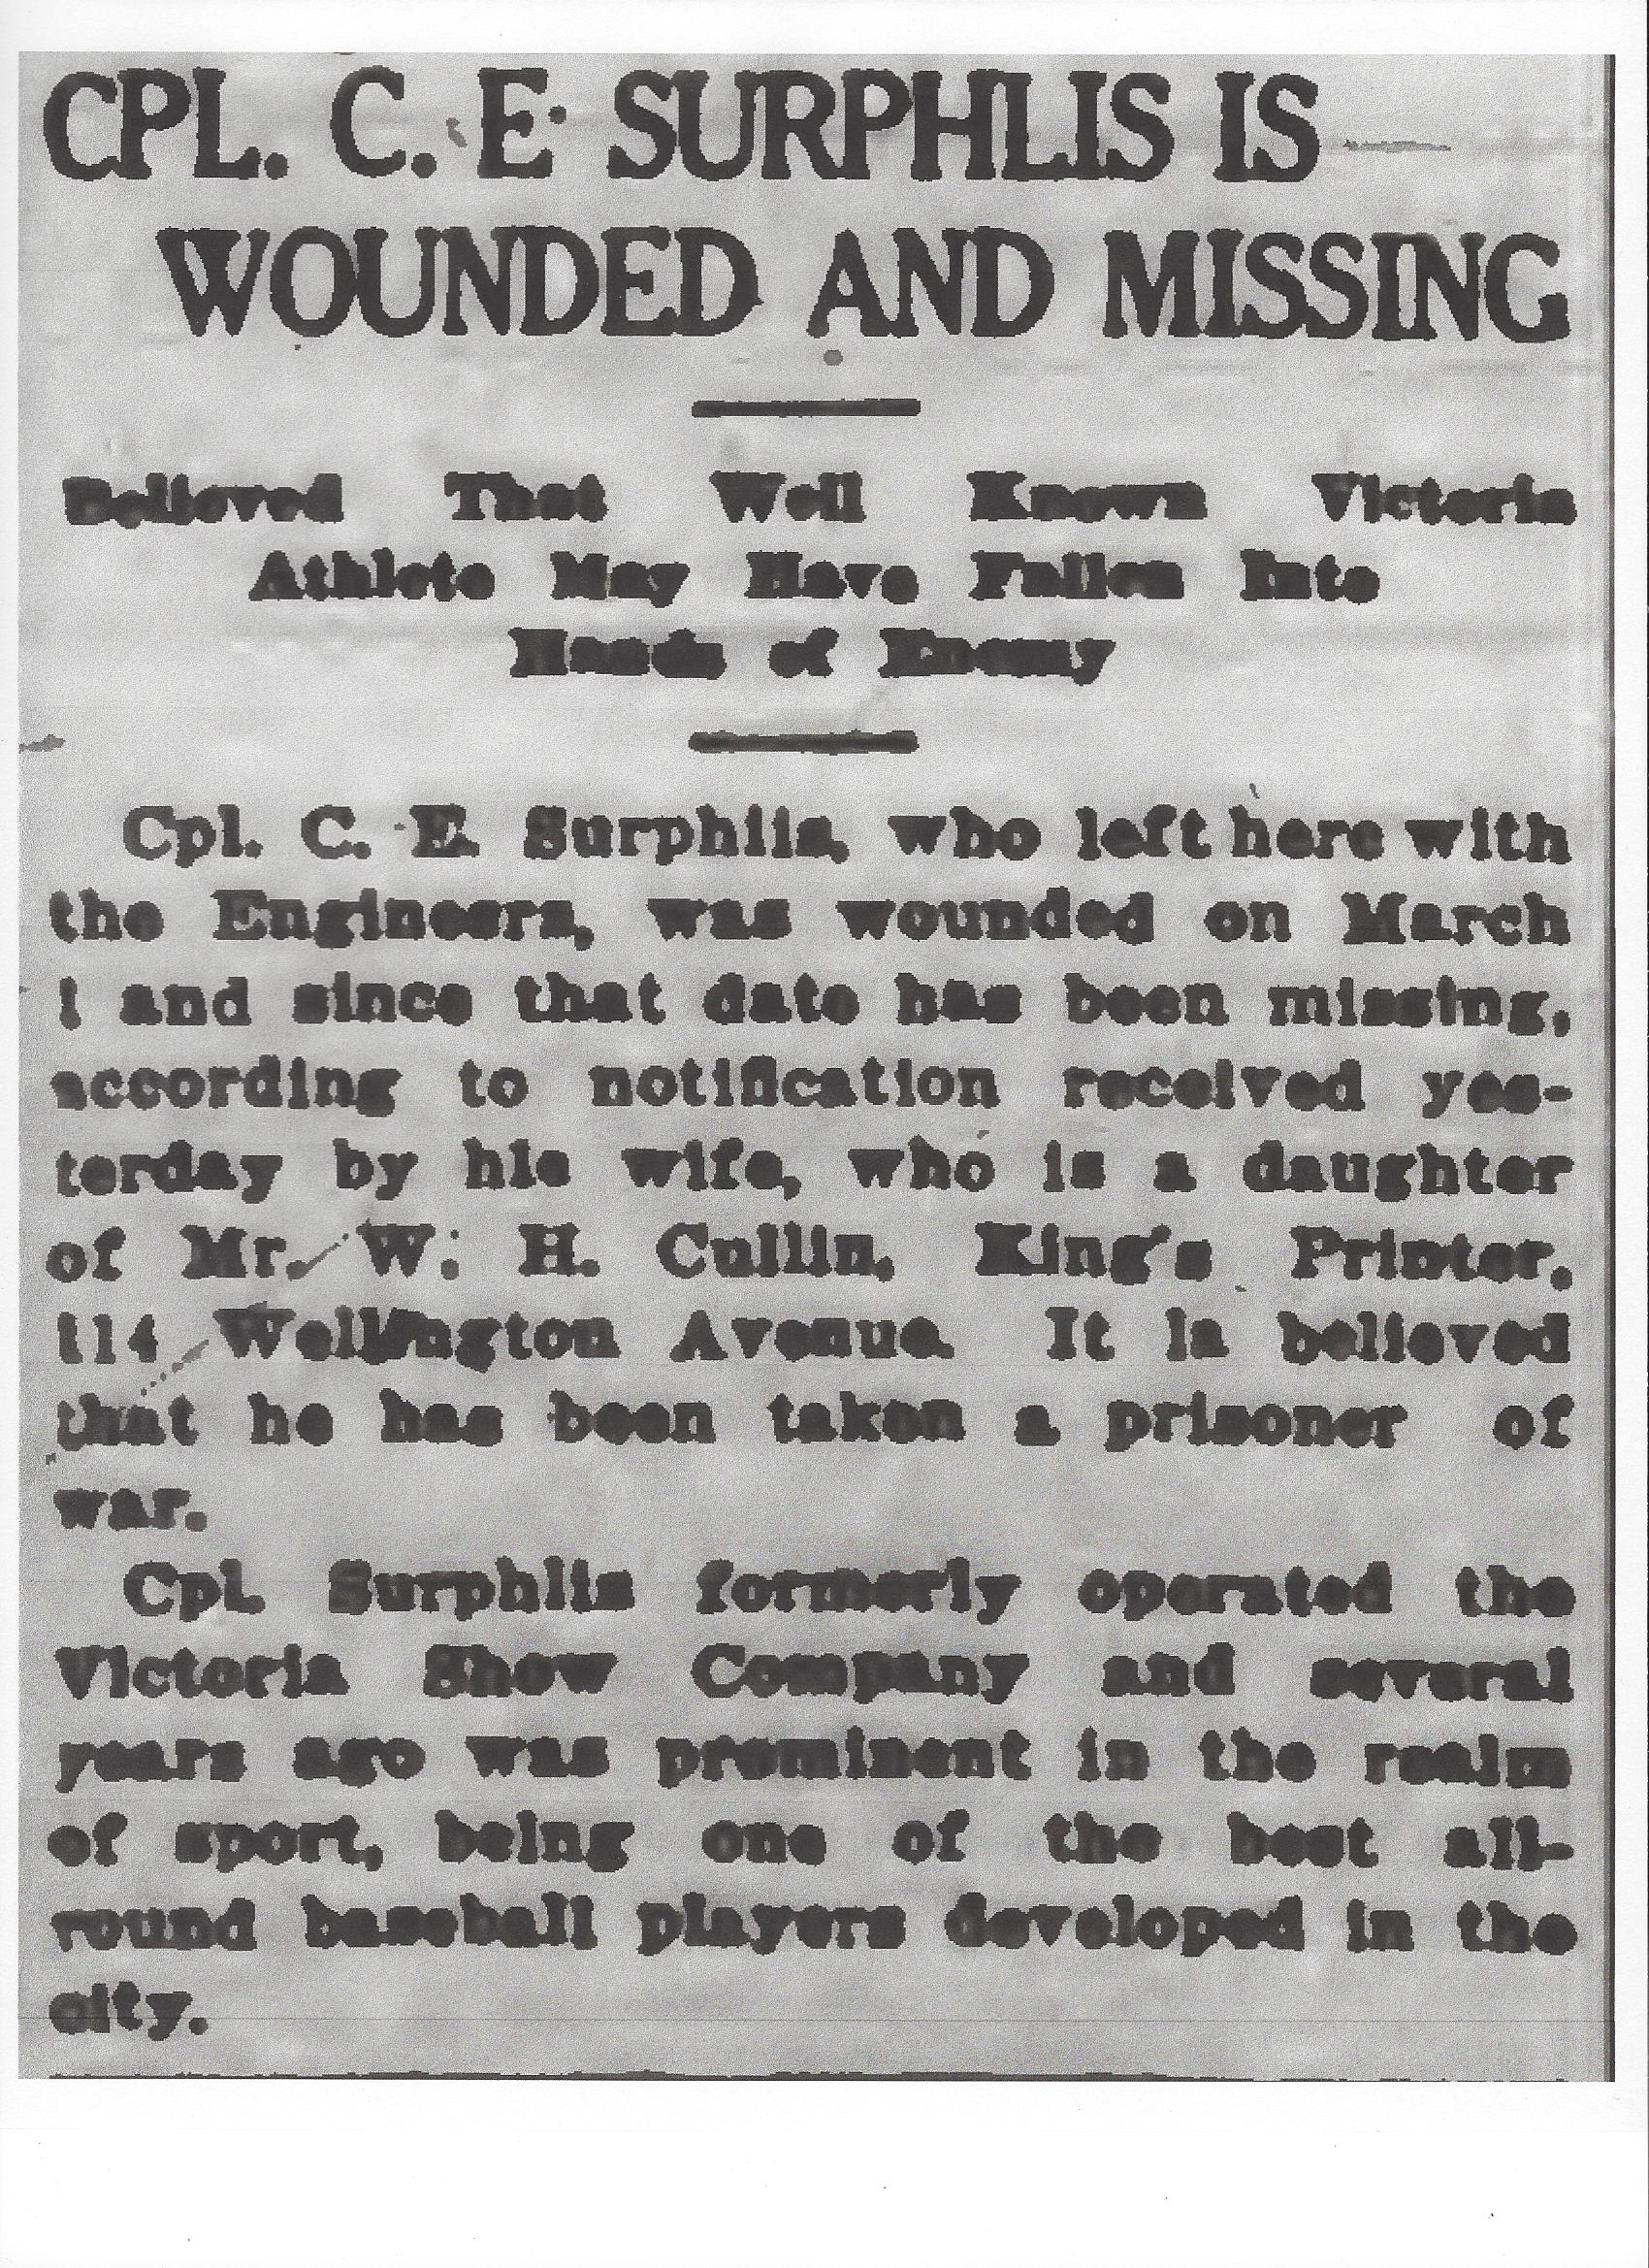 Newspaper clipping– From the Daily Colonist of March 17, 1917. Image taken from web address of http://archive.org/stream/dailycolonist59y83uvic#page/n0/mode/1up